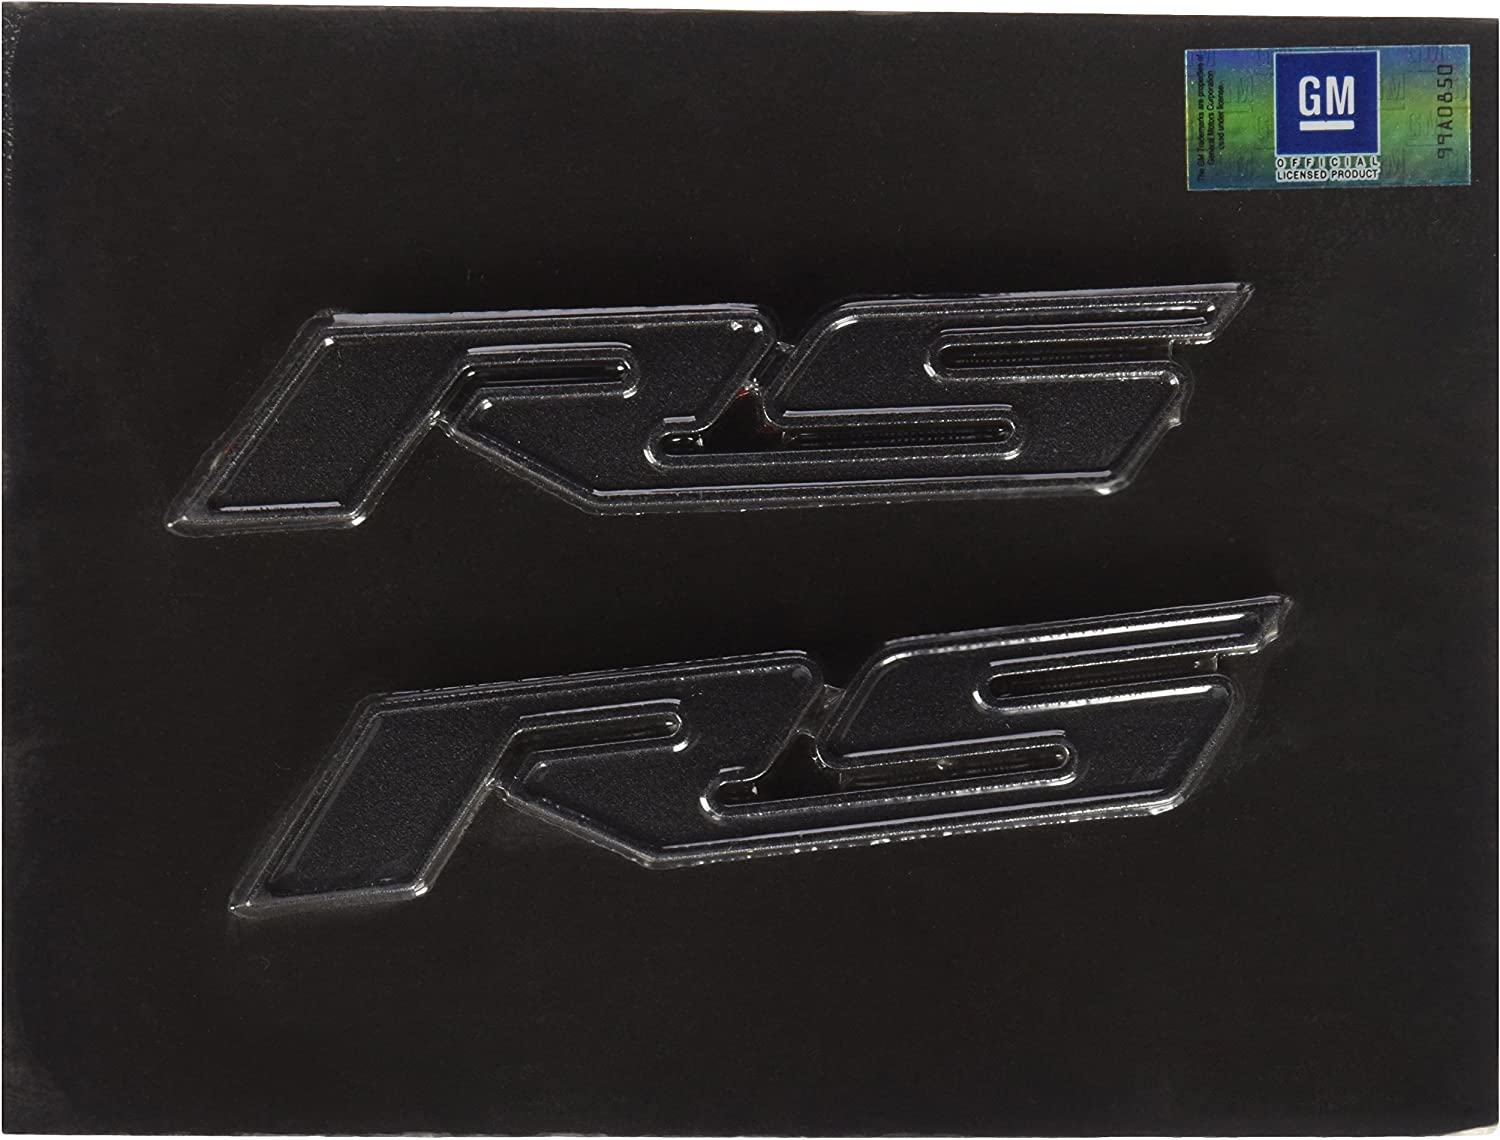 T-Rex 6910132 Defenderworx Chrome GM Licensed Door Sill Plate with Camaro Logo